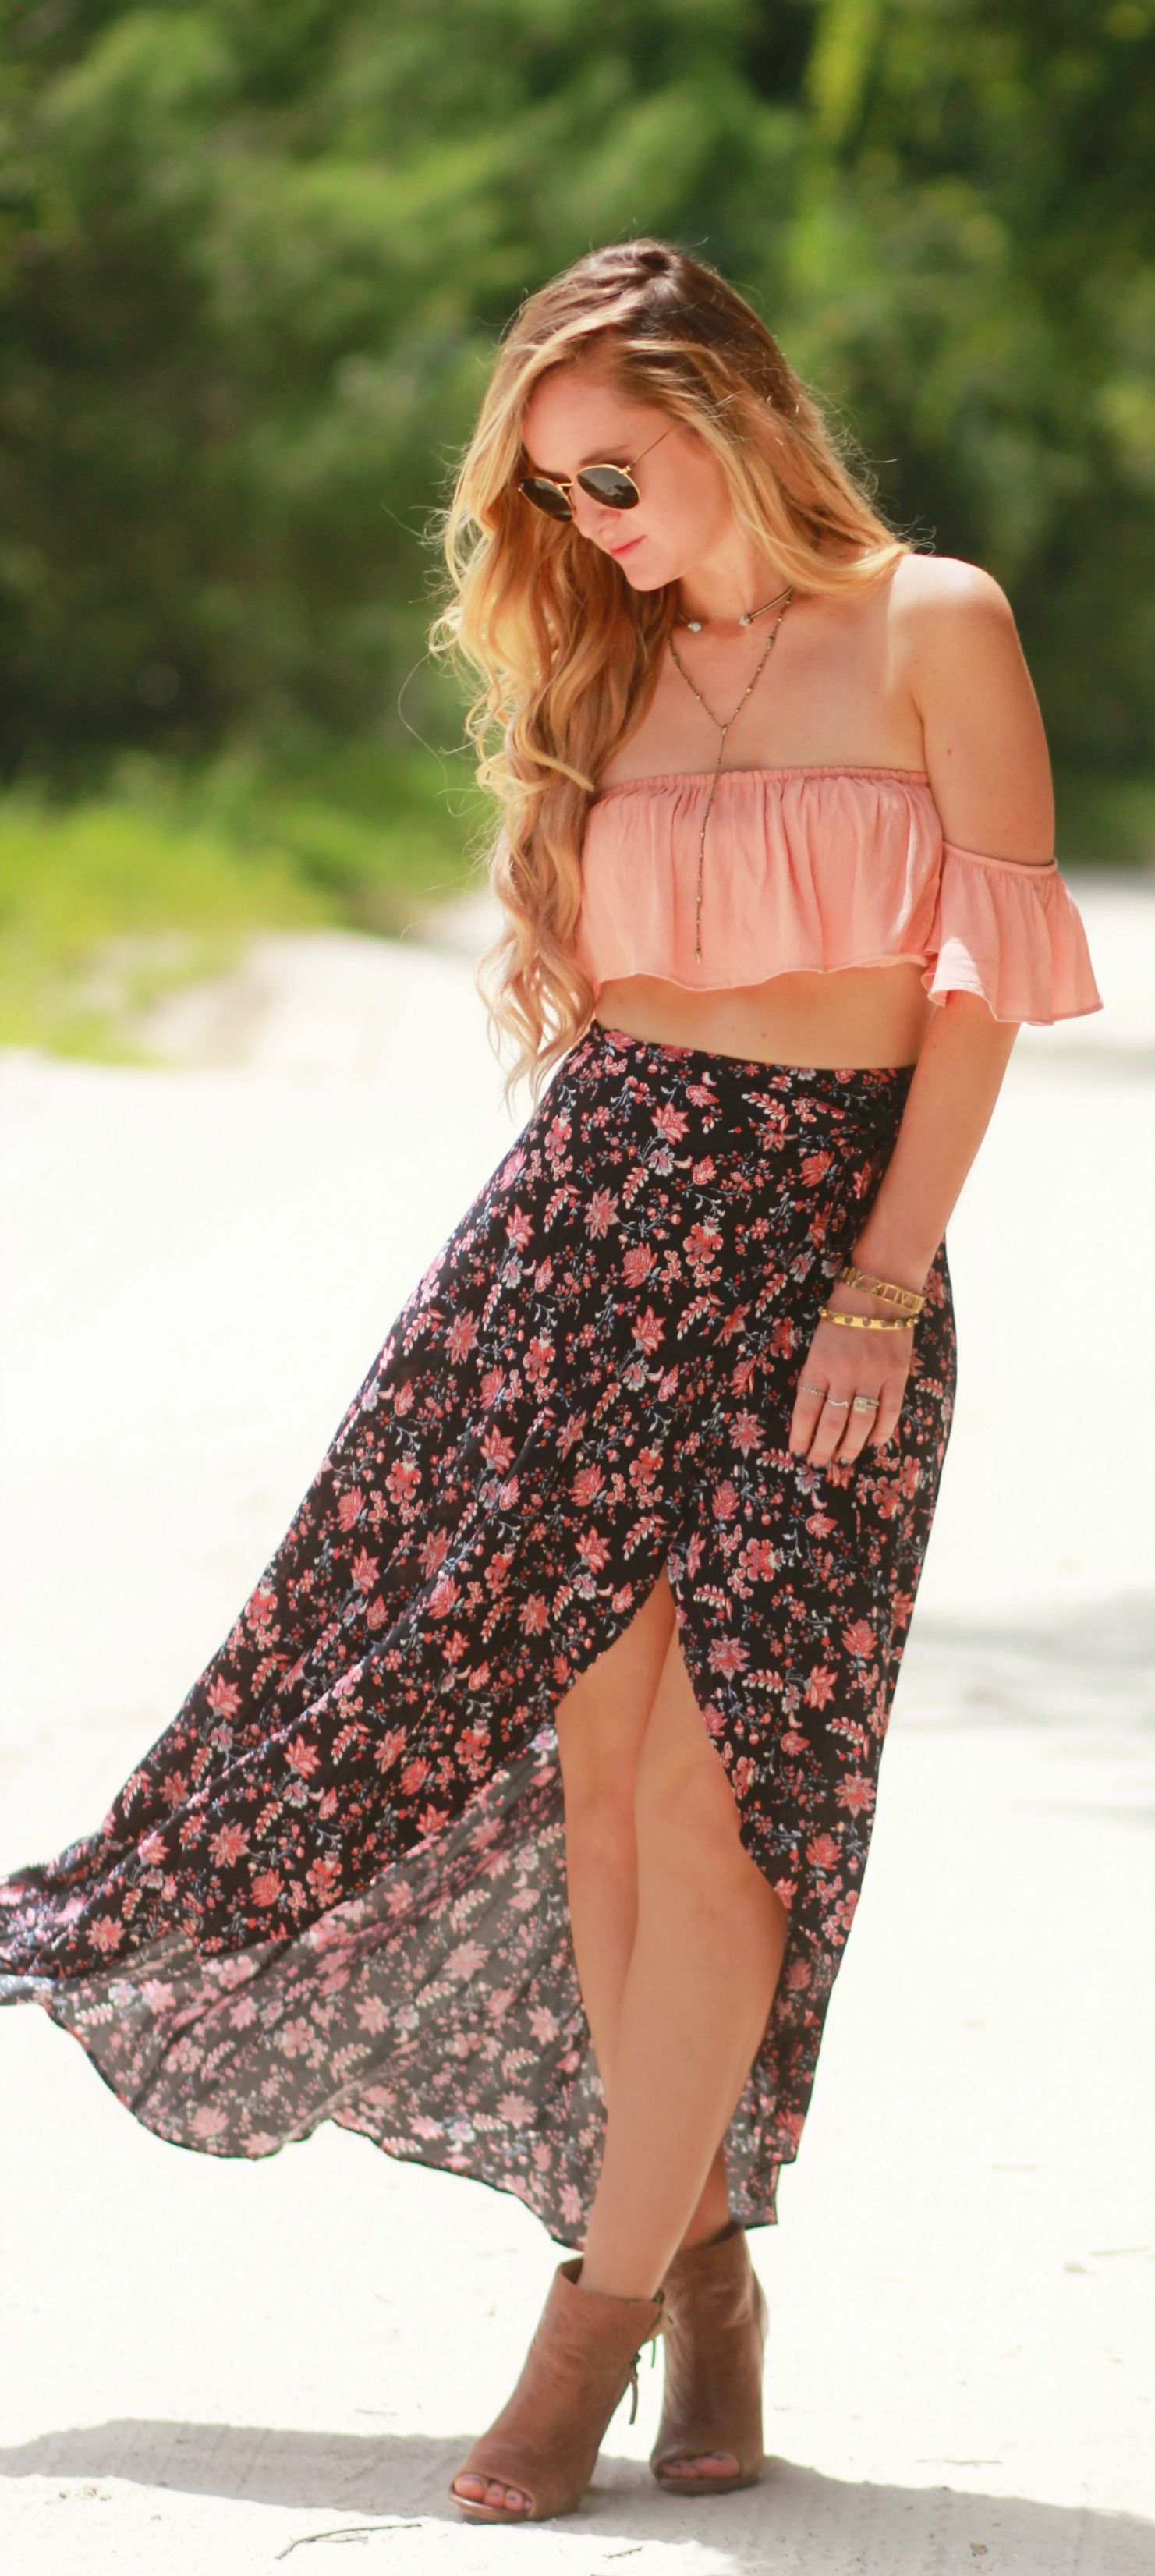 822d10b114d Boho chic outfit styled with blush ruffle crop top